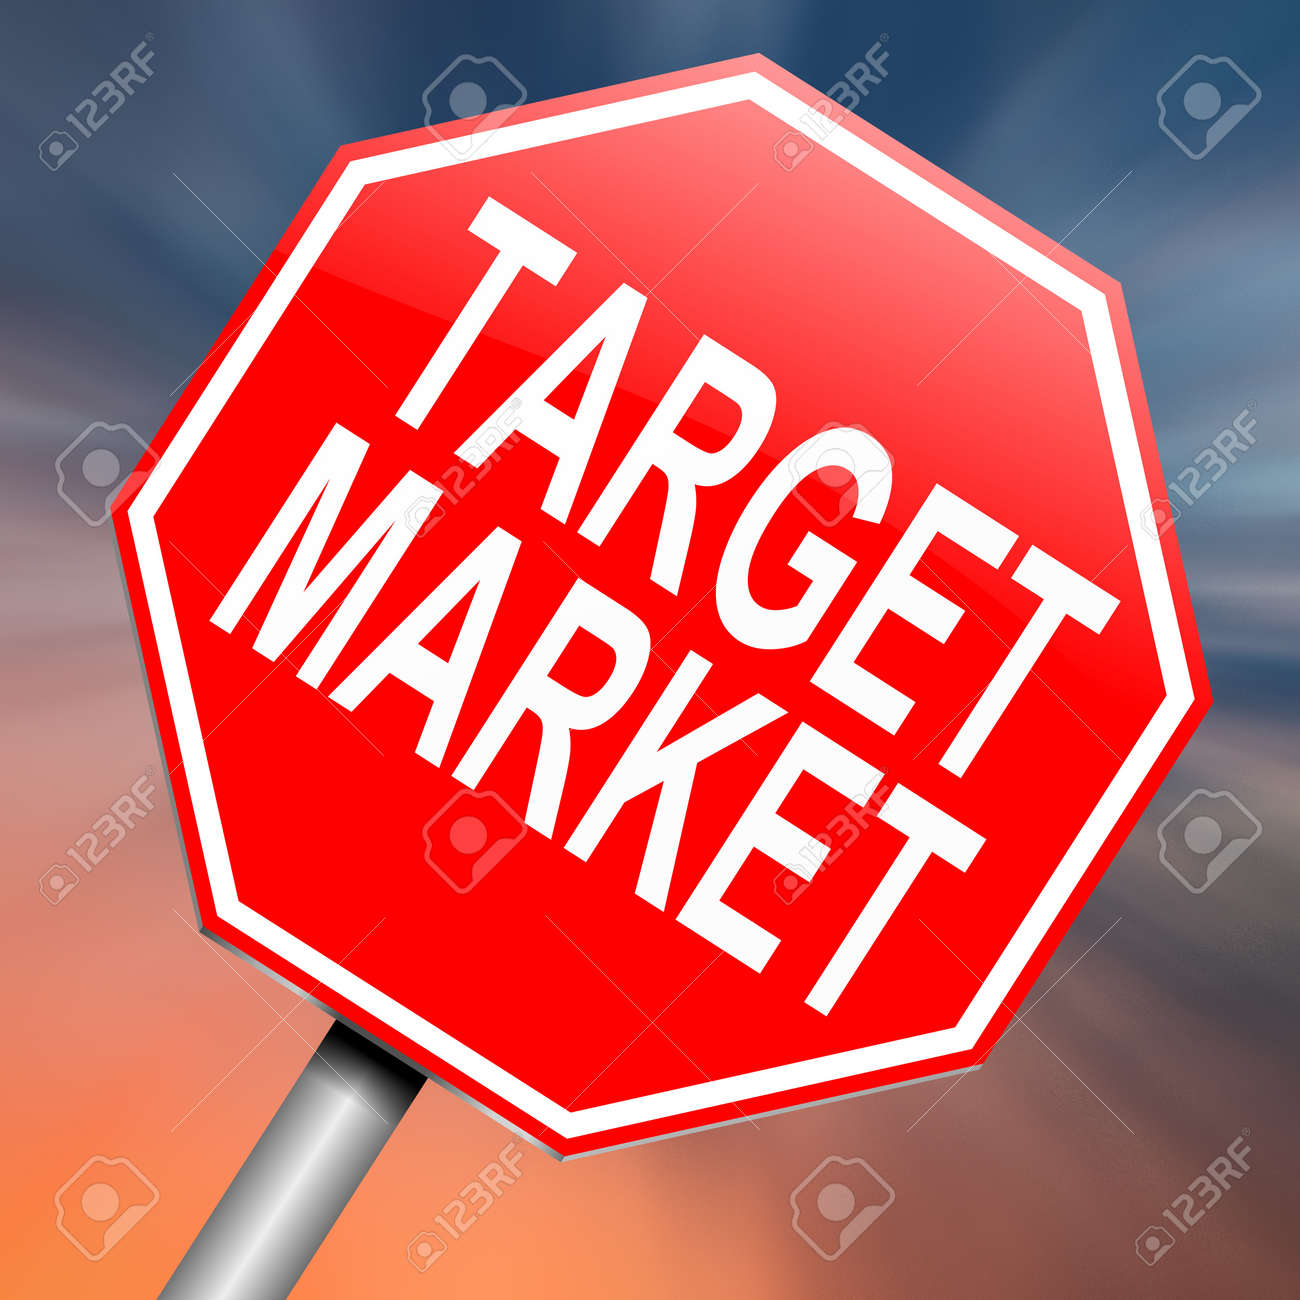 Illustration depicting a roadsign with a target market concept. Abstract background. Stock Photo - 16708702